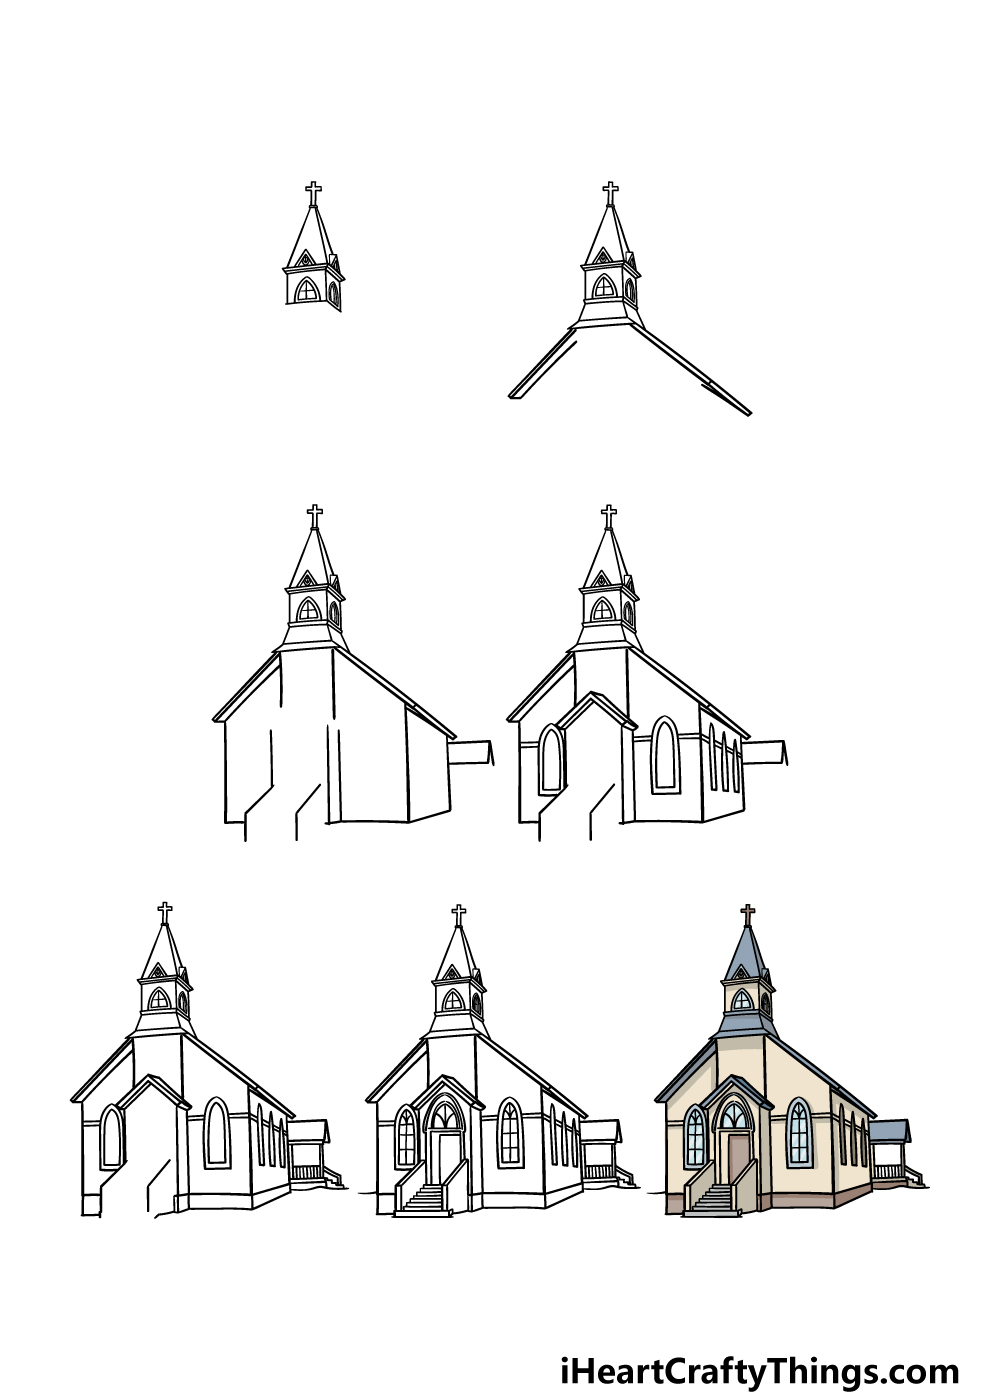 how to draw a church in 7 steps